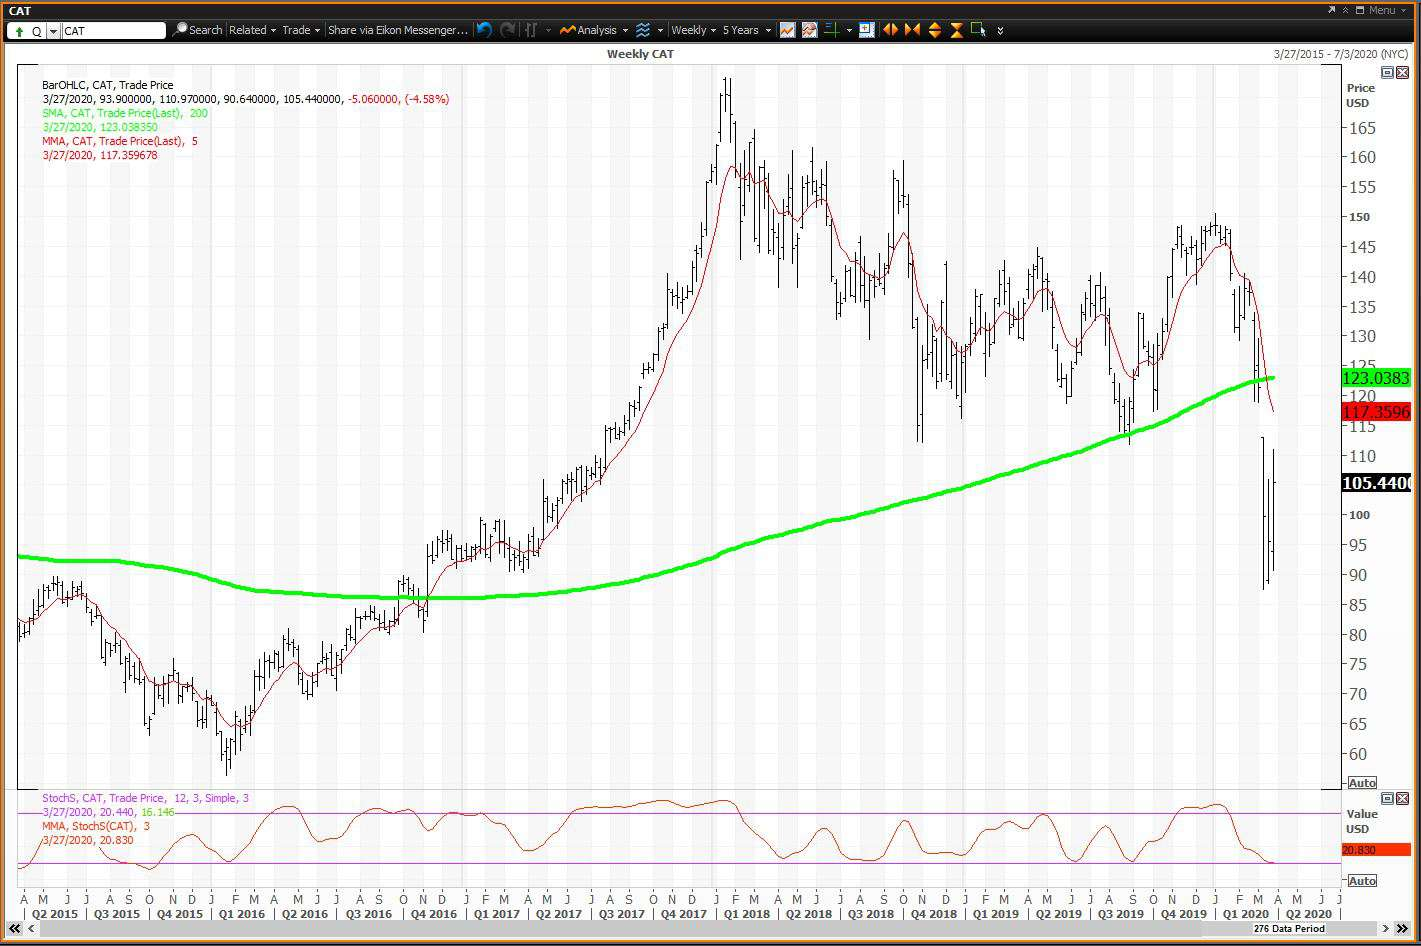 Weekly chart showing the share price performance of Caterpillar Inc. (CAT)